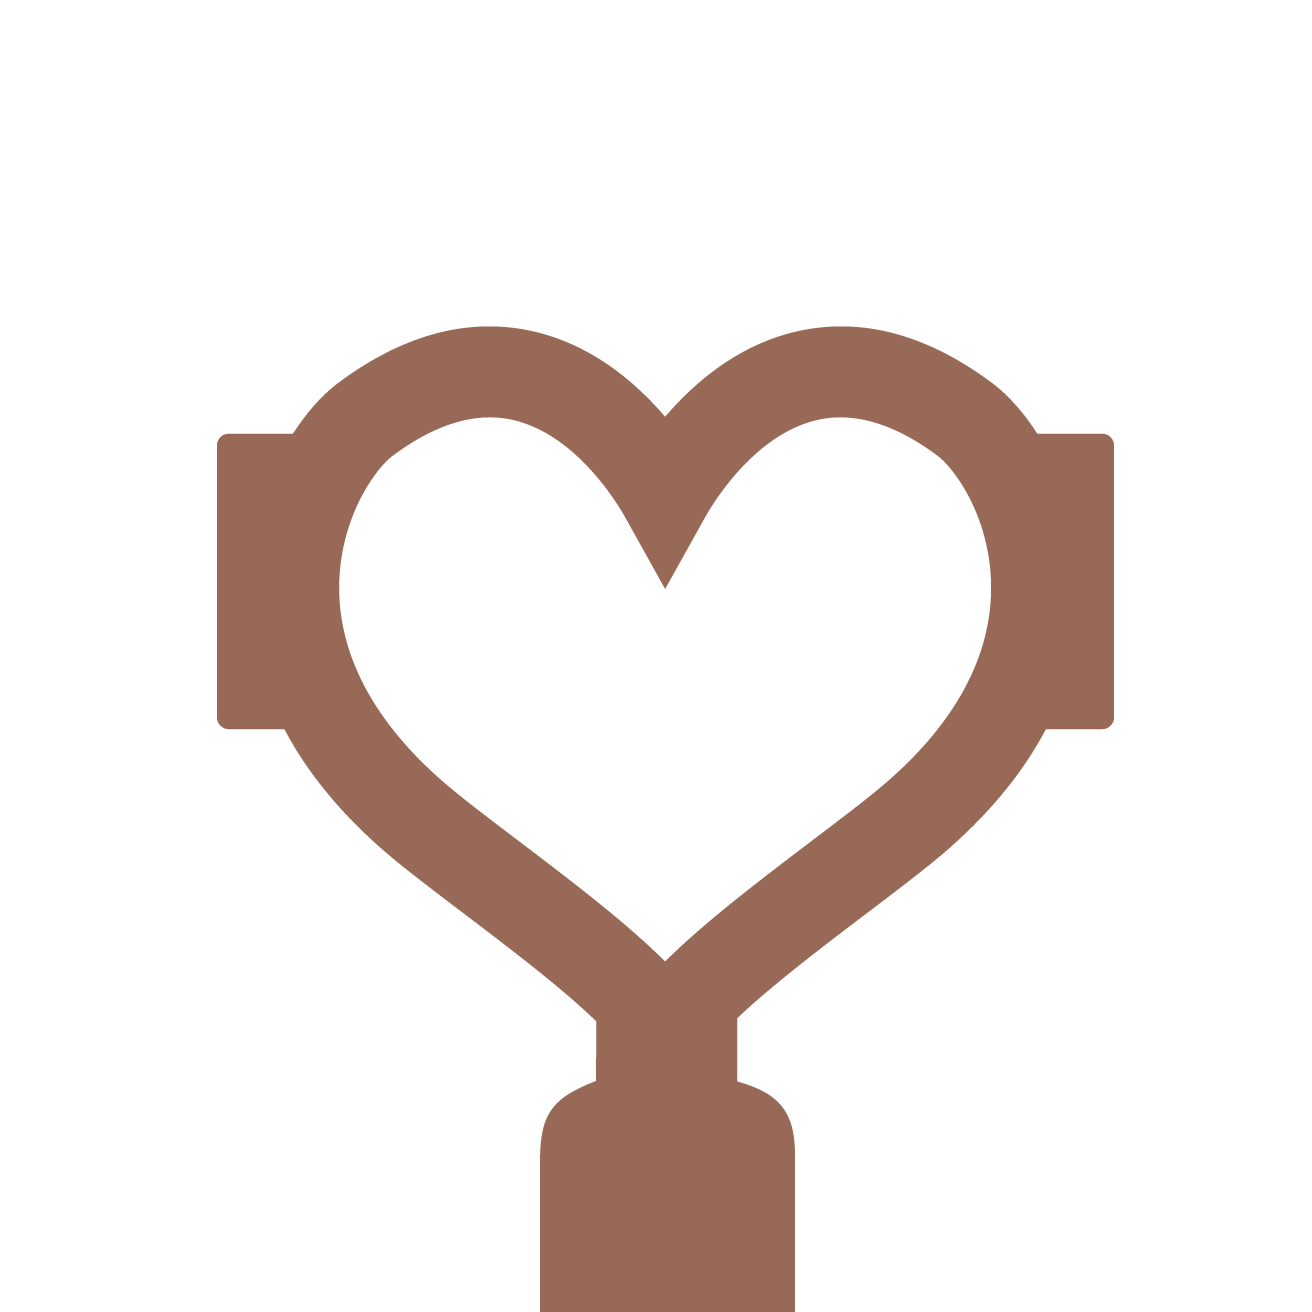 Bellabarista dalian Amazon 1 KG roaster